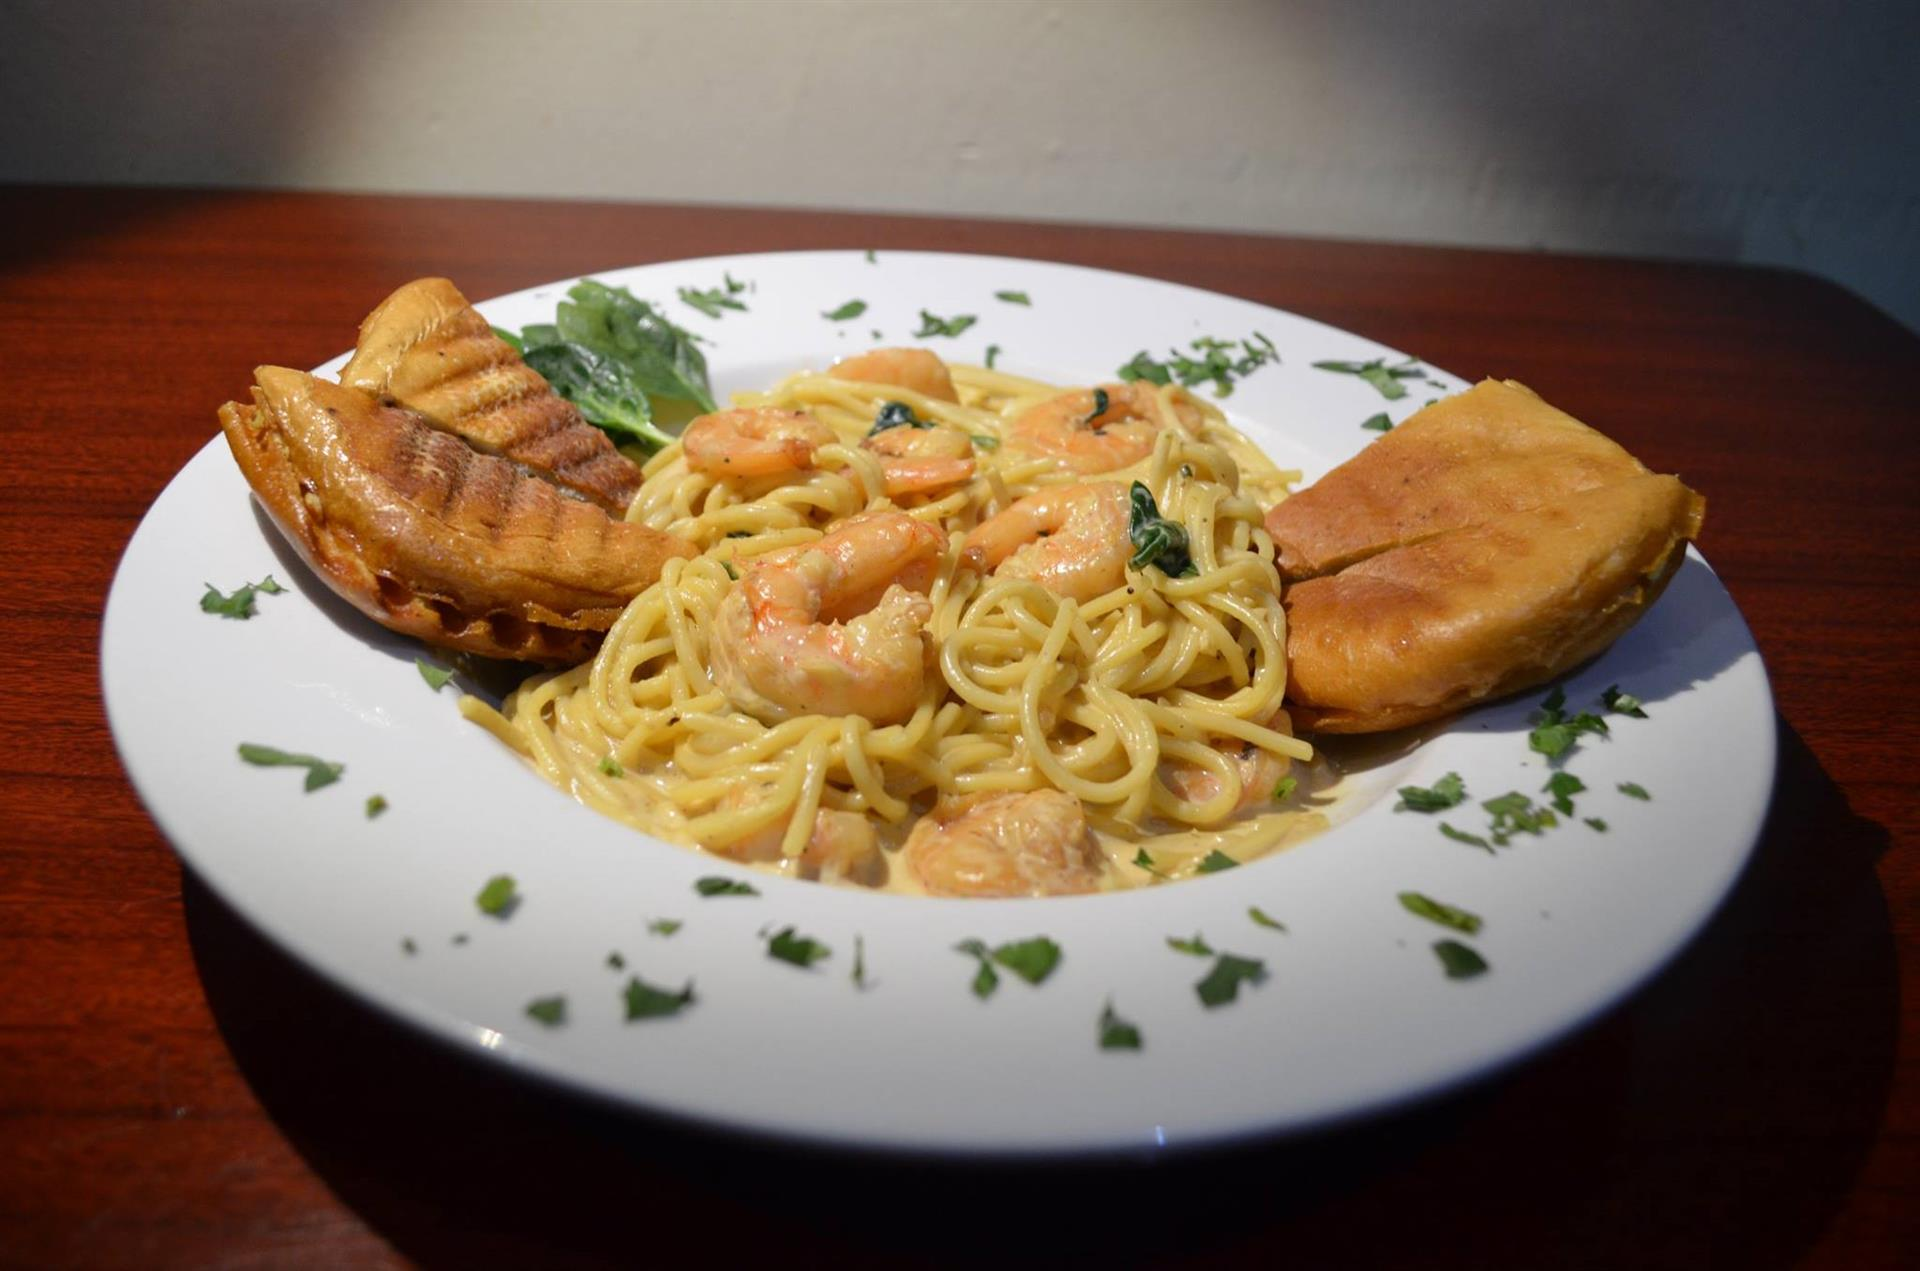 Pasta Con Camarones: Angel hair pasta sautéed in a white, creamy garlic sauce with spinach and tomatoes.